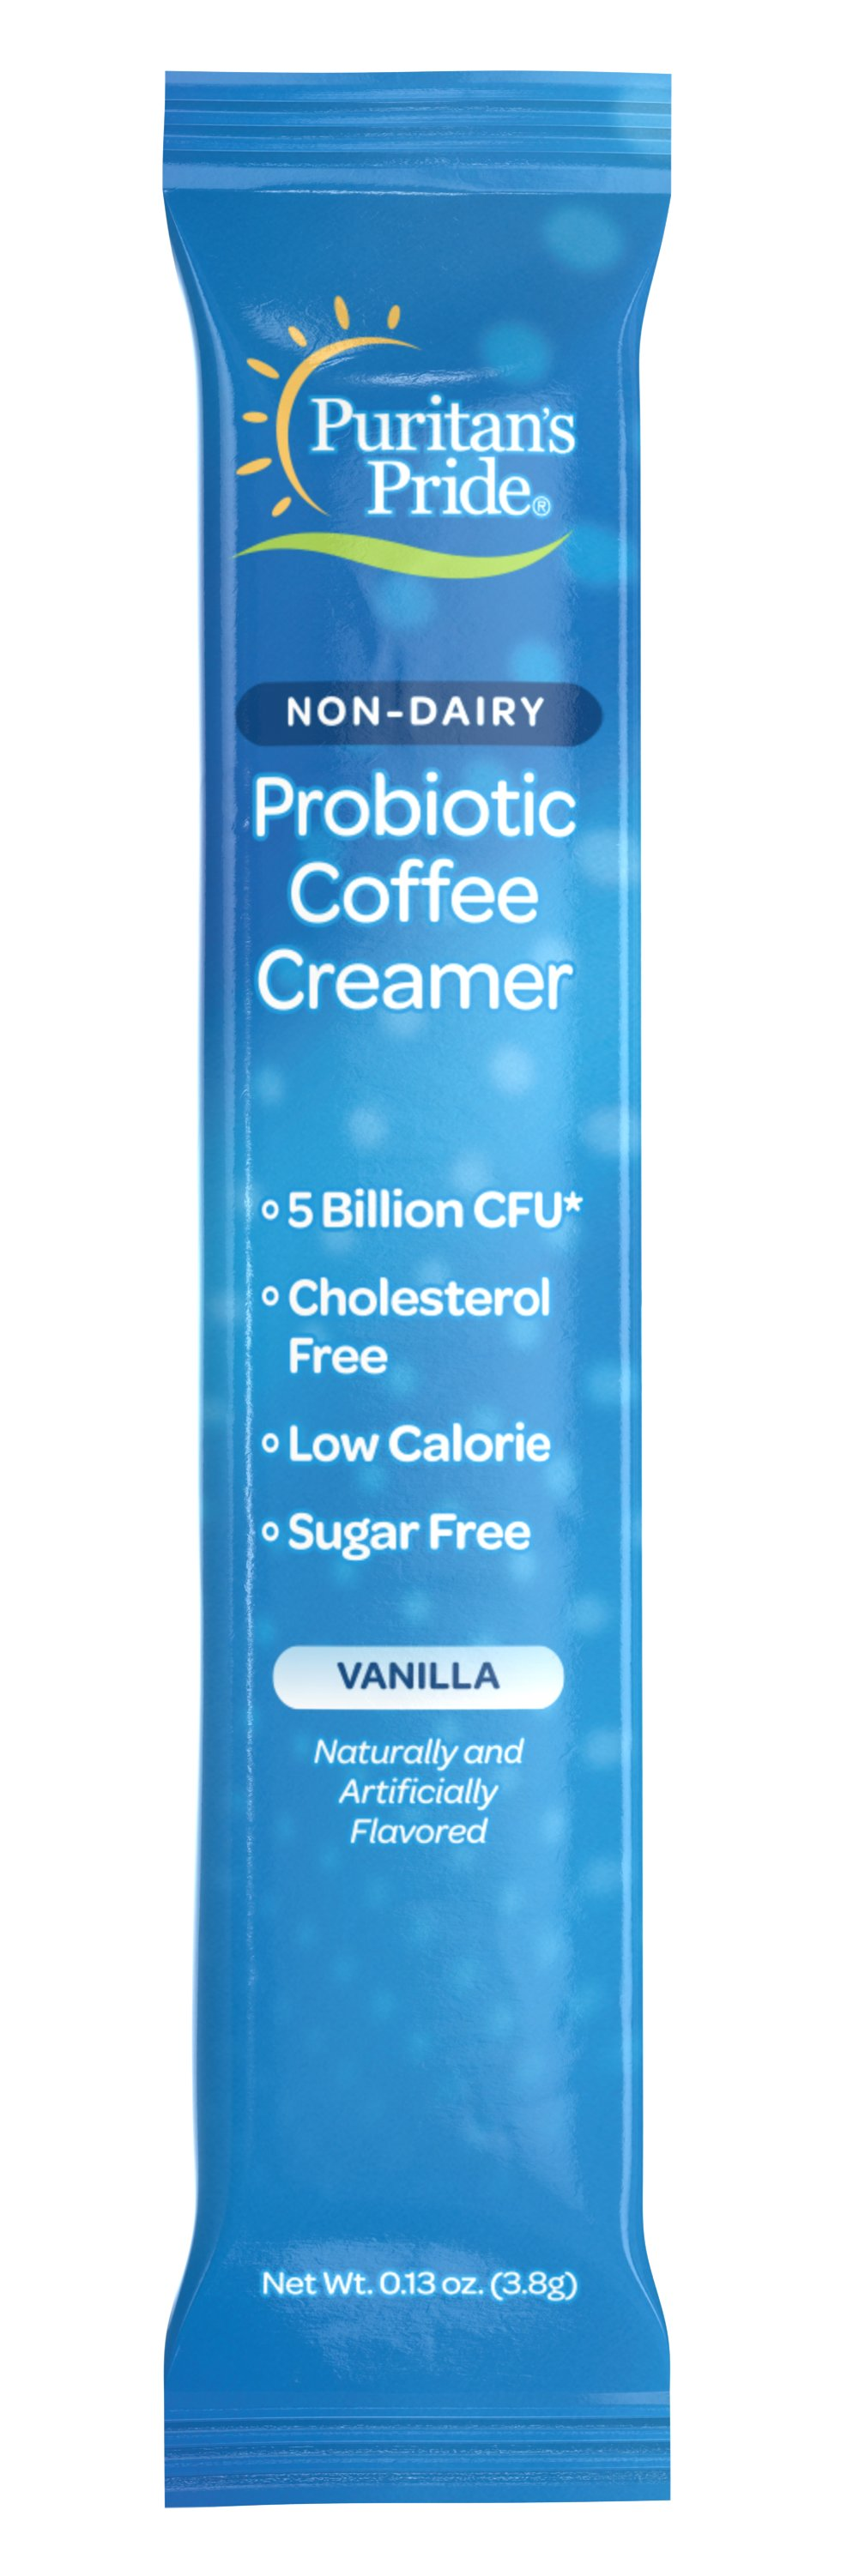 Non-Dairy Probiotic Coffee Creamer Vanilla Thumbnail Alternate Bottle View